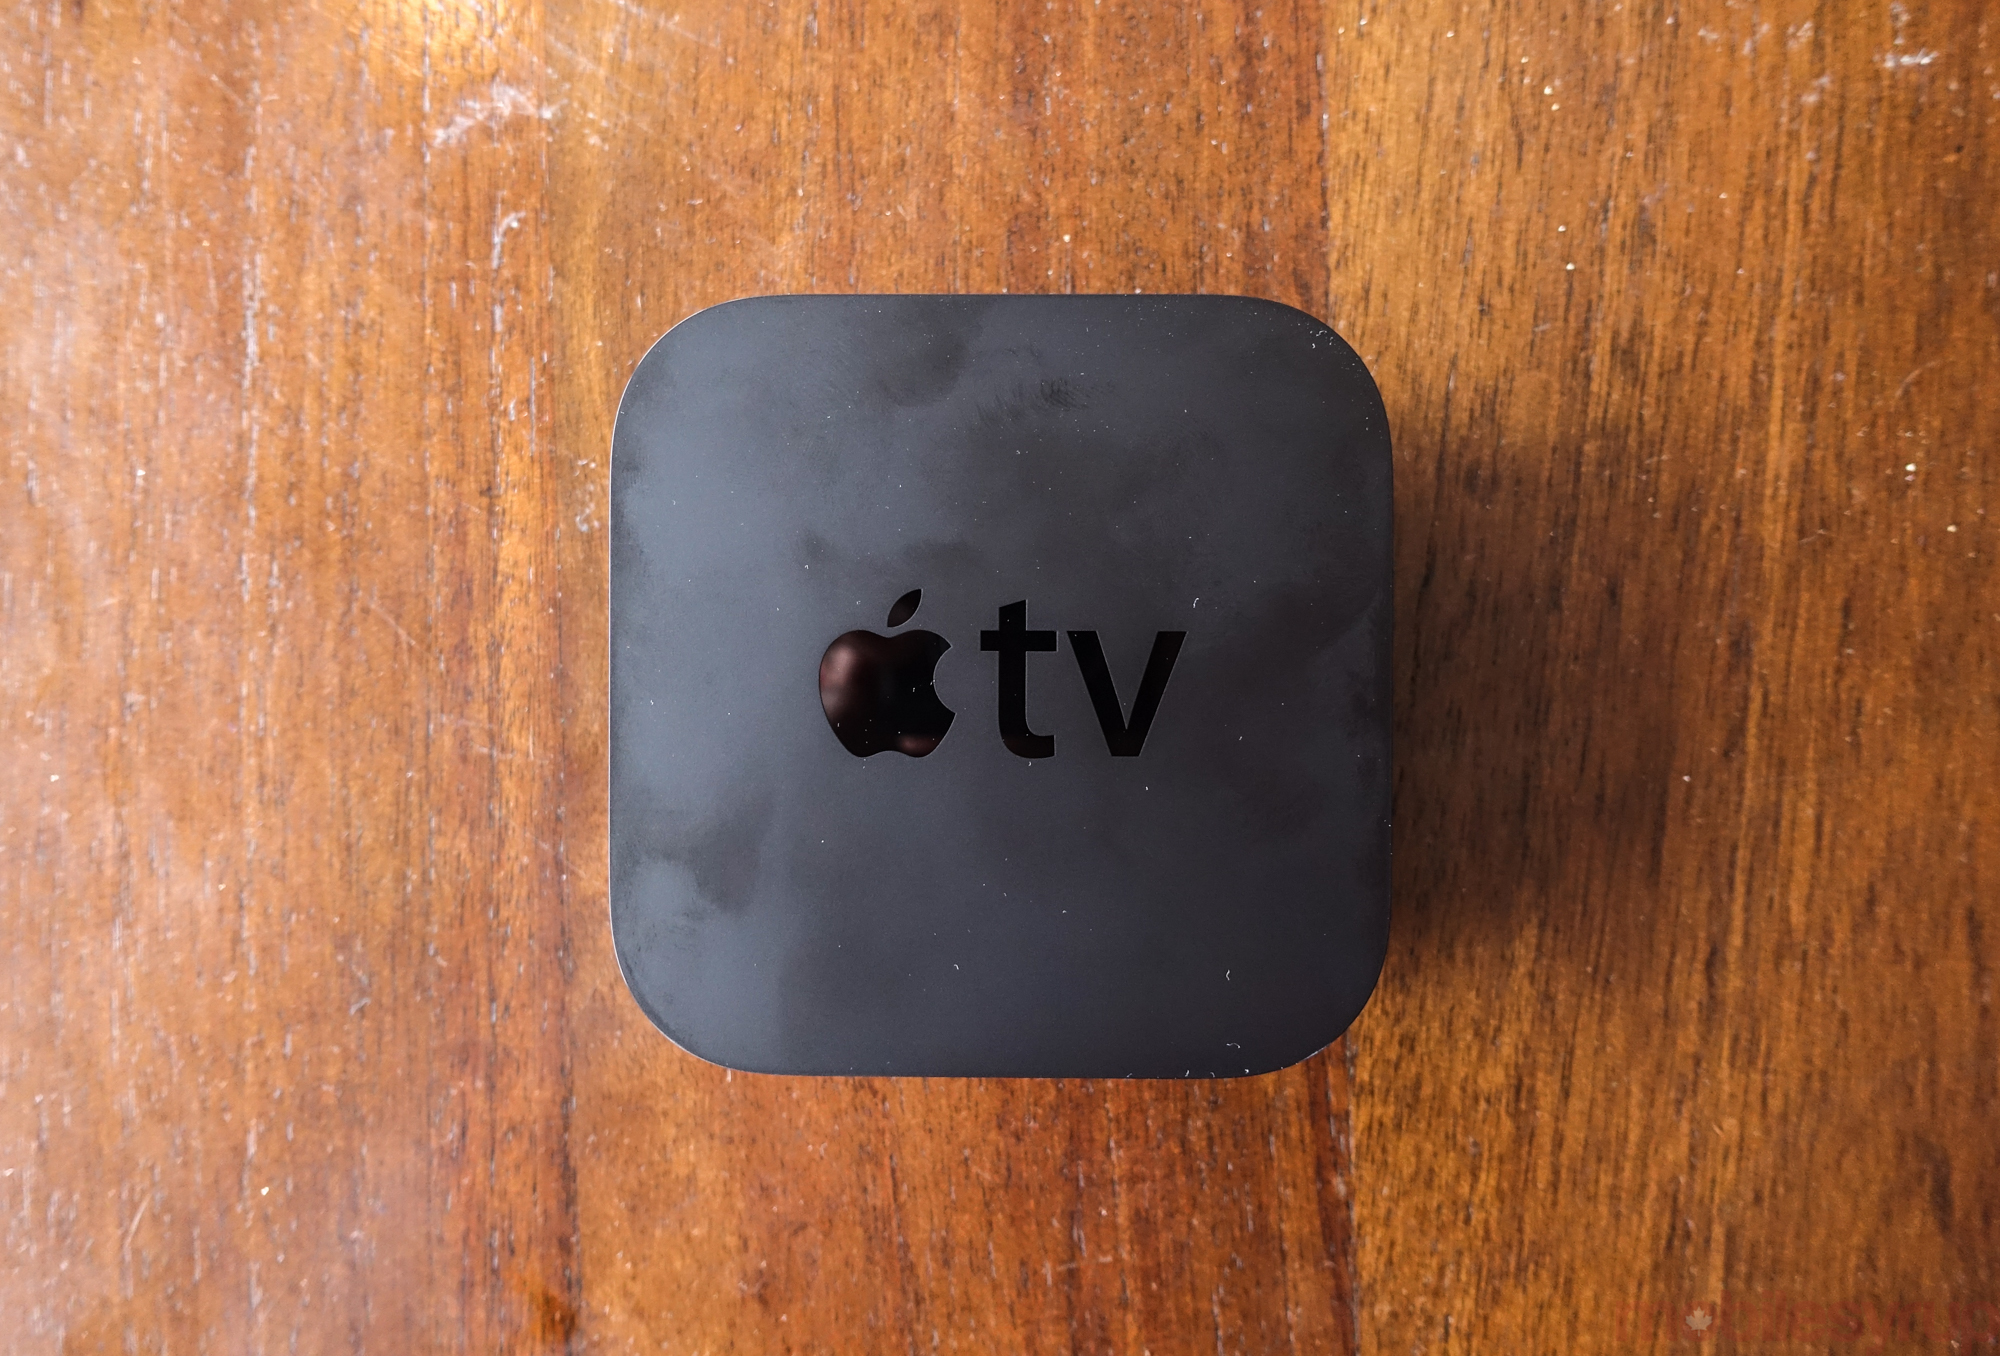 appletv4greview-01624